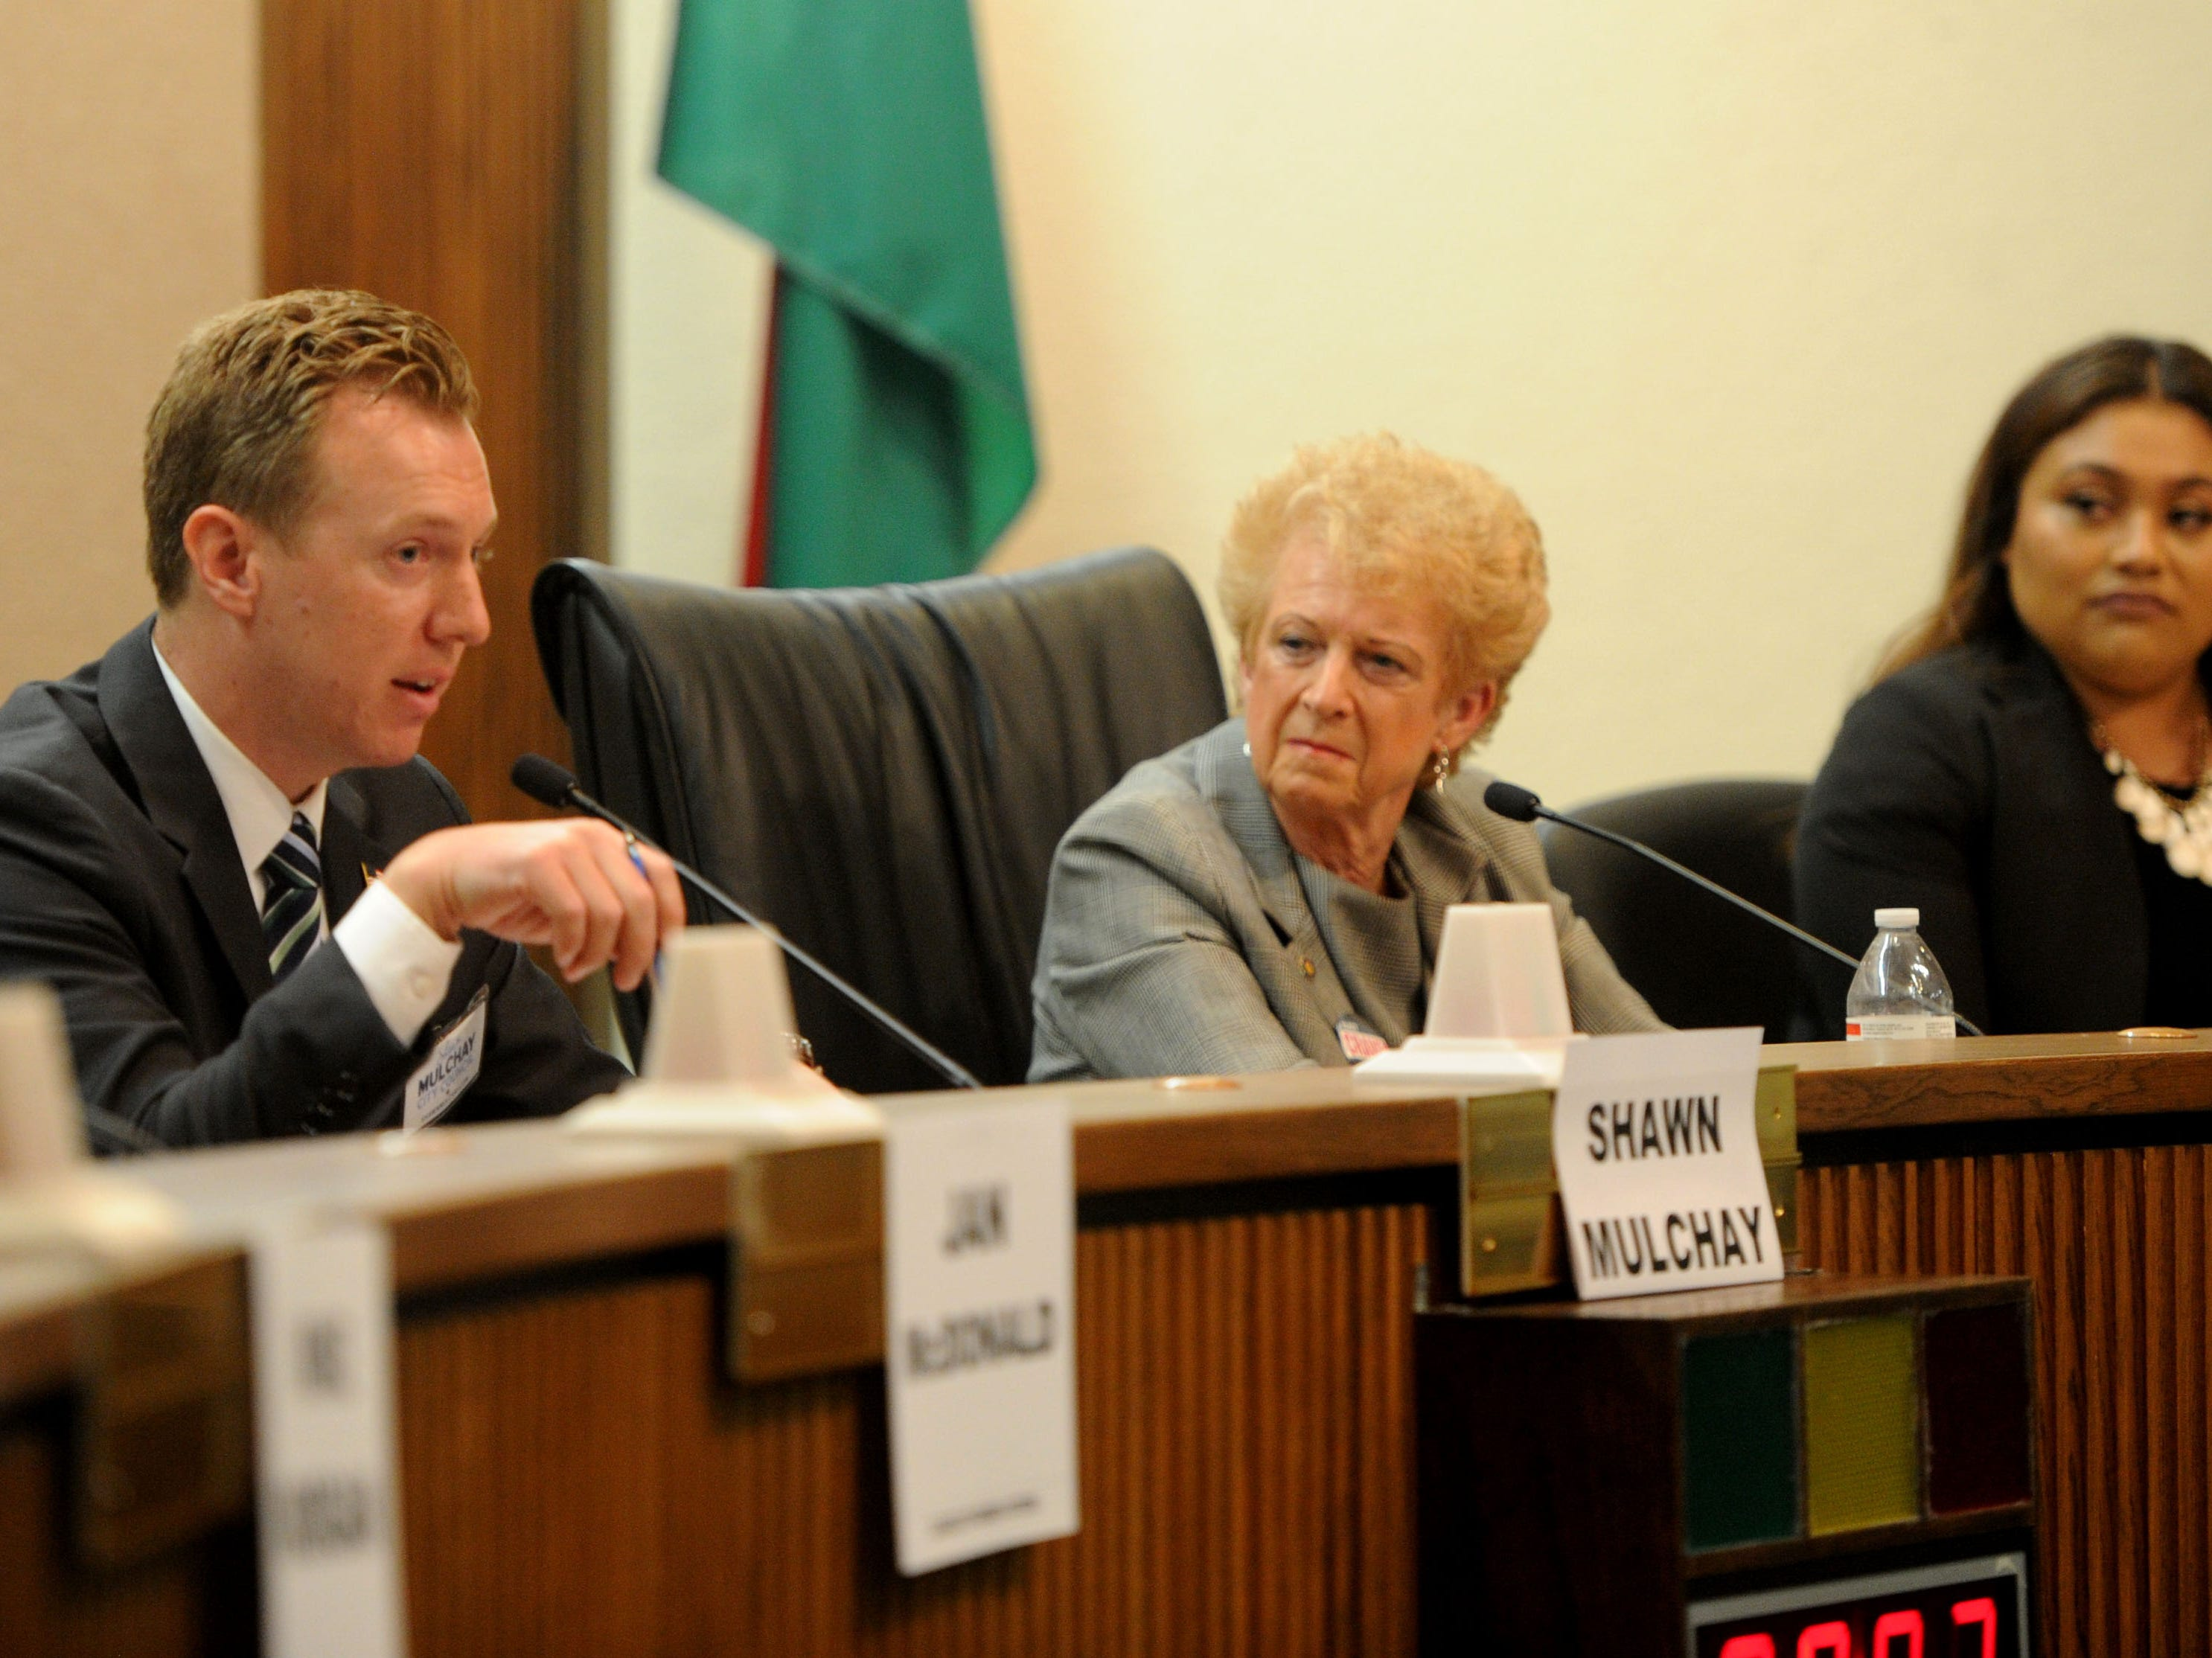 Shawn Mulchay, from left, Charlotte Craven and Jessica Romero participate in a Camarillo City Council forum Tuesday night. Nine candidates are running to fill three seats. The forum was put on byVentura County League of Women Voters.